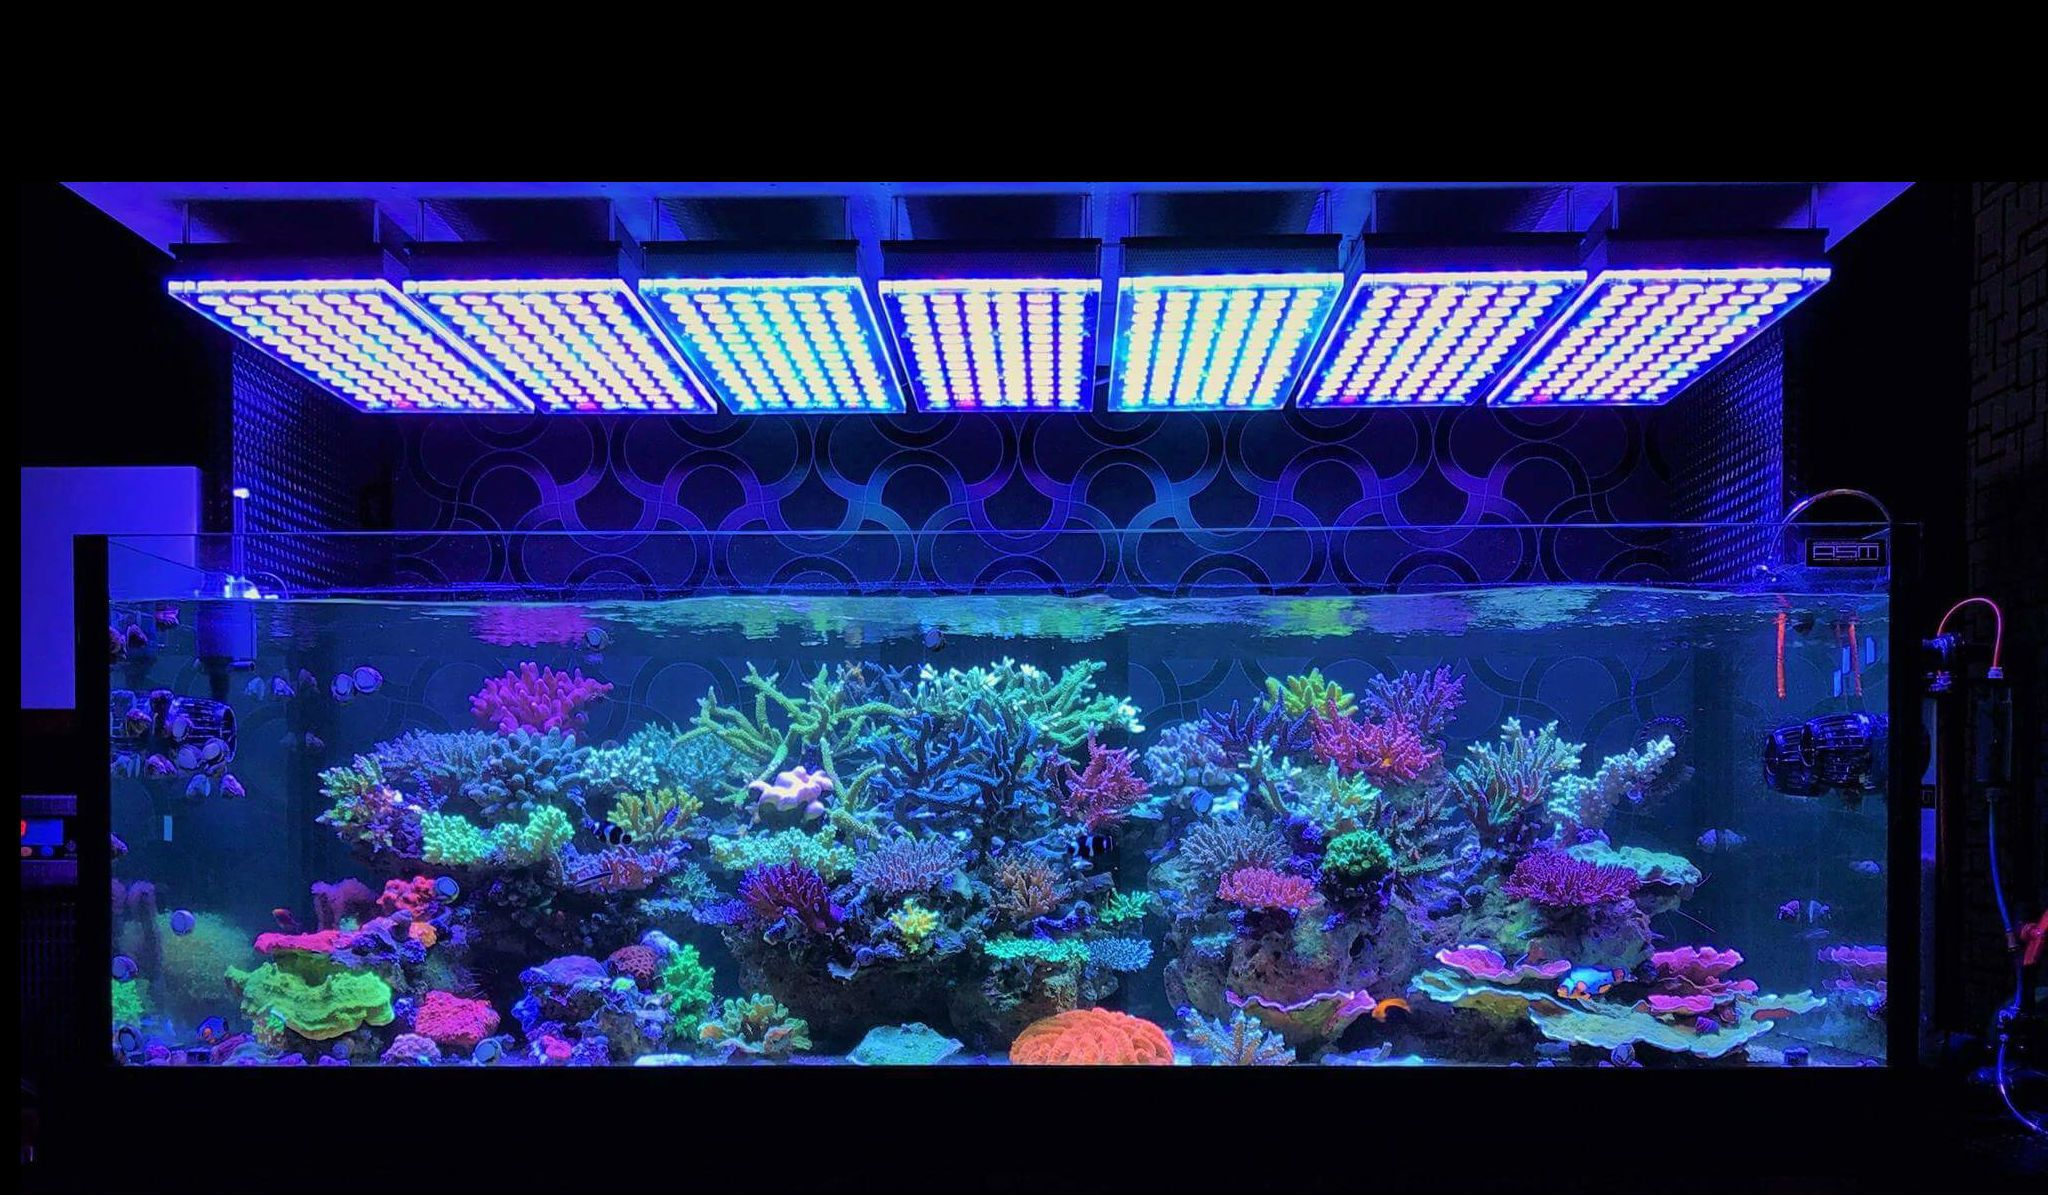 atlantik v4 reef aquarium led beleuchtung orphek aquarium led beleuchtung. Black Bedroom Furniture Sets. Home Design Ideas